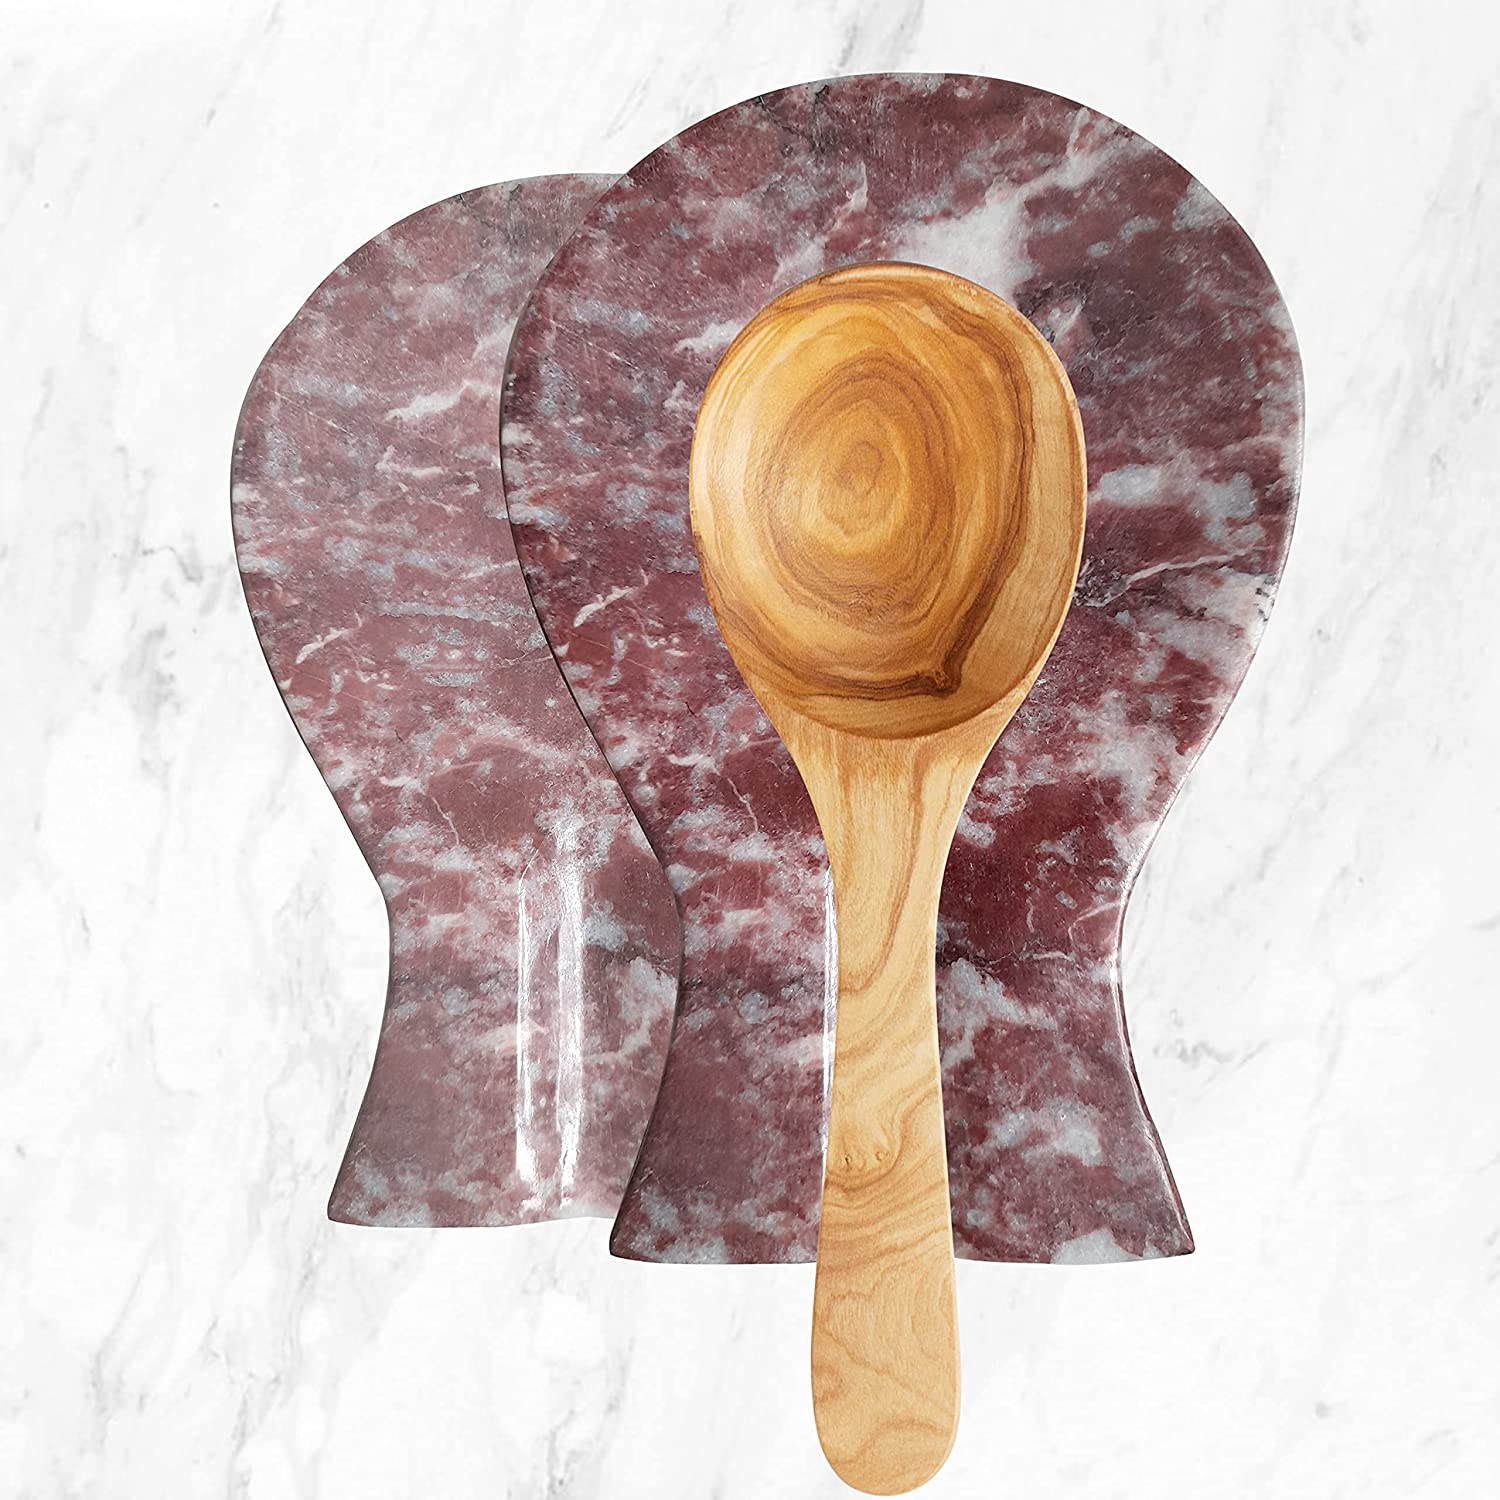 Luxury Handmade Red and Max Sales for sale 63% OFF White Marble Rest Spoon for Coun Kitchen